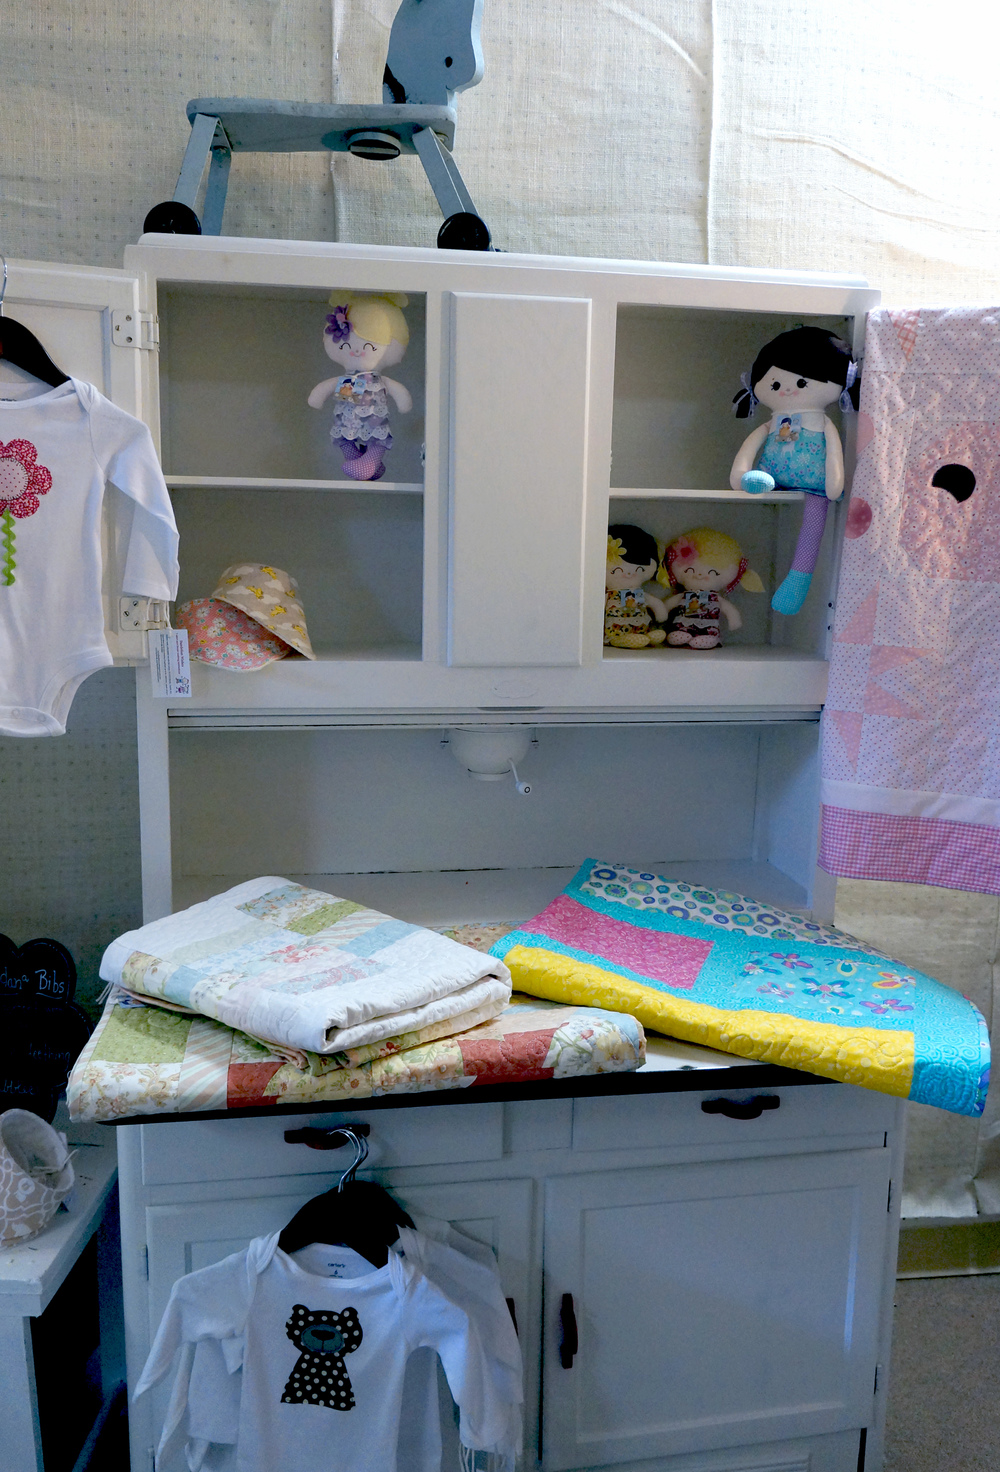 kids-room-hutch.jpg